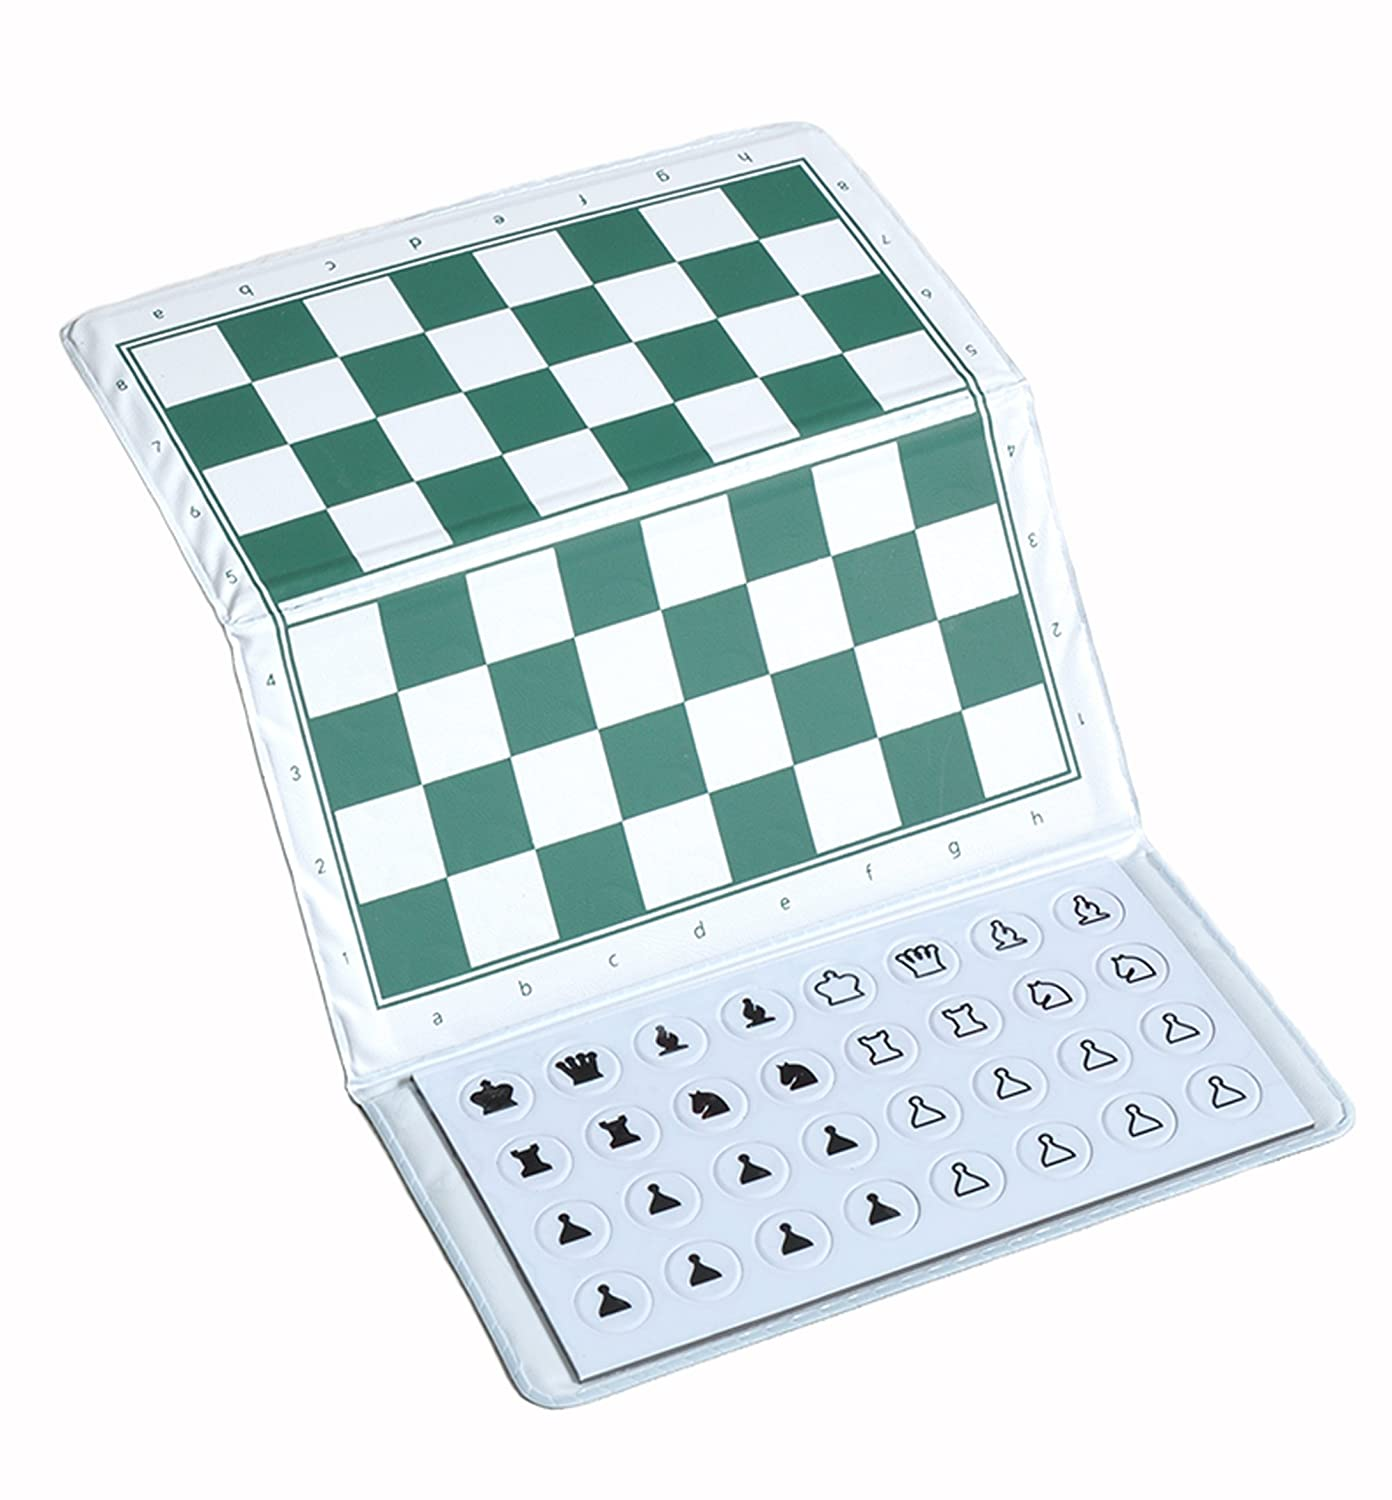 CHECKBOOK MAGNETIC Travel Chess Set The House of Staunton